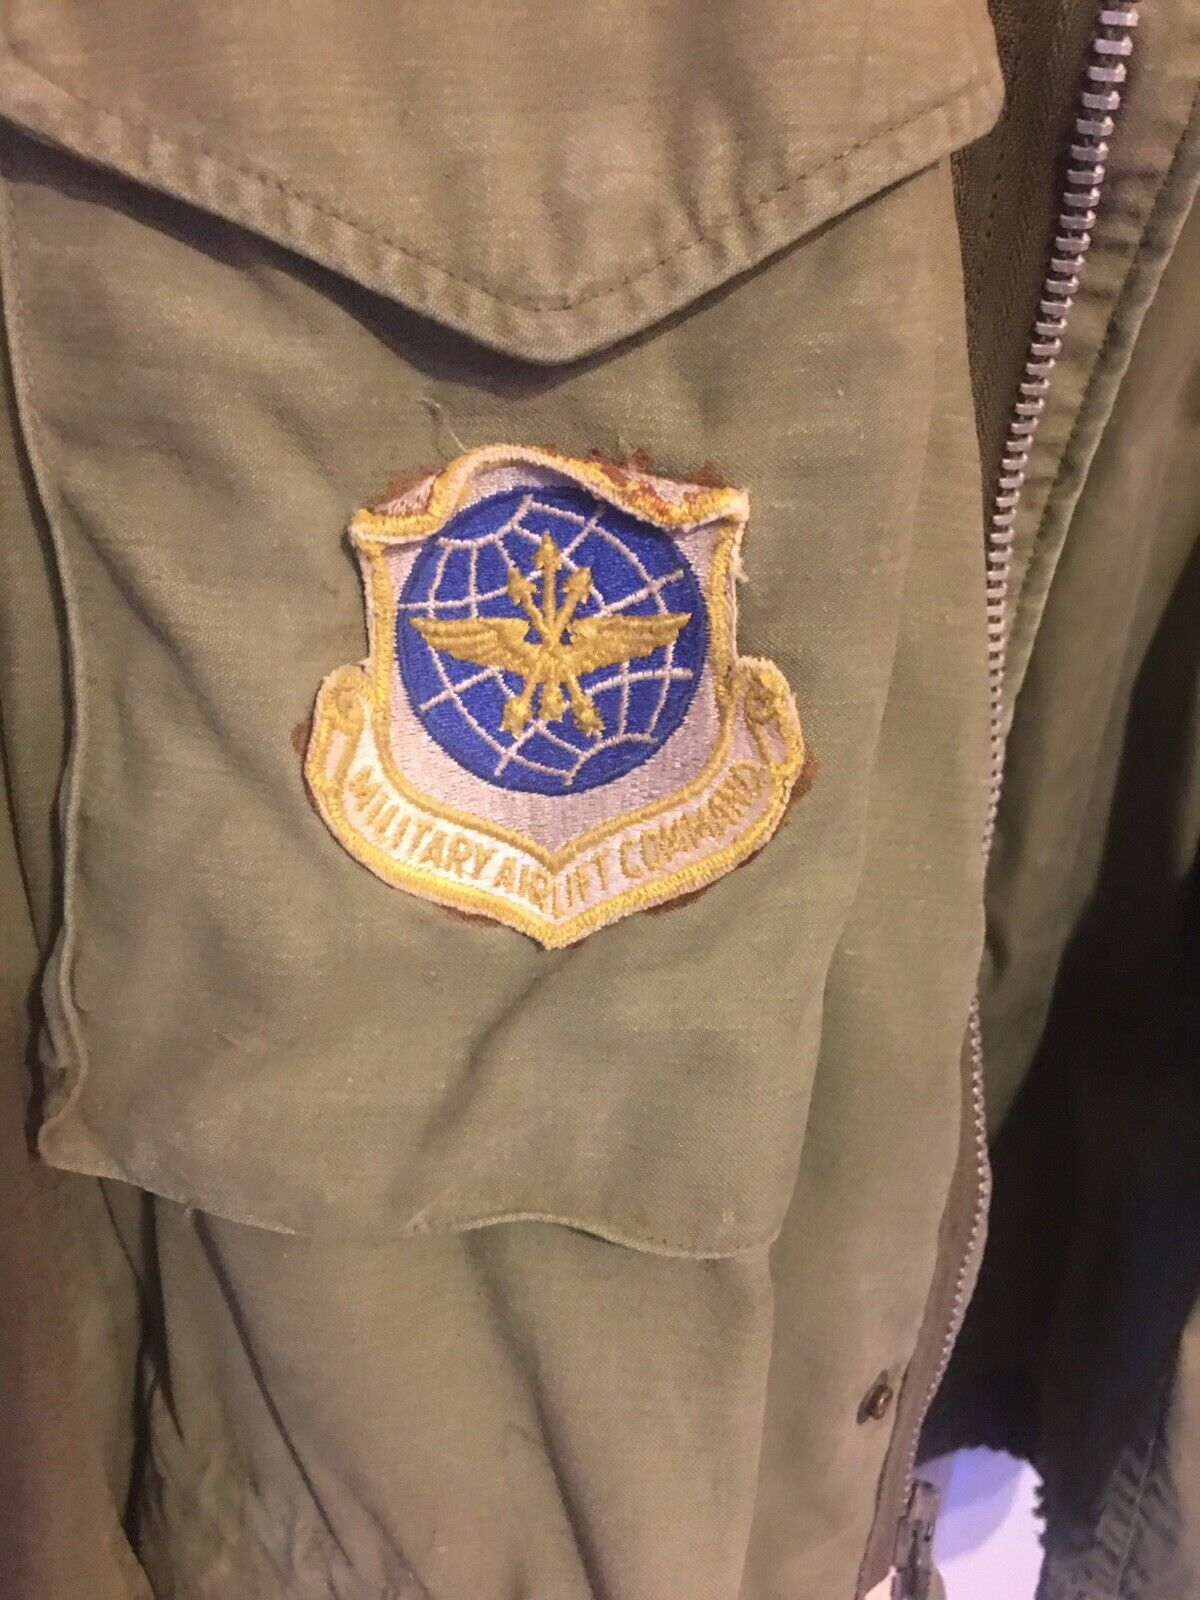 From Louisiana Nation Air Show Patch Trade Air Force Vintage 1980/'s Military Airlift Command Patch